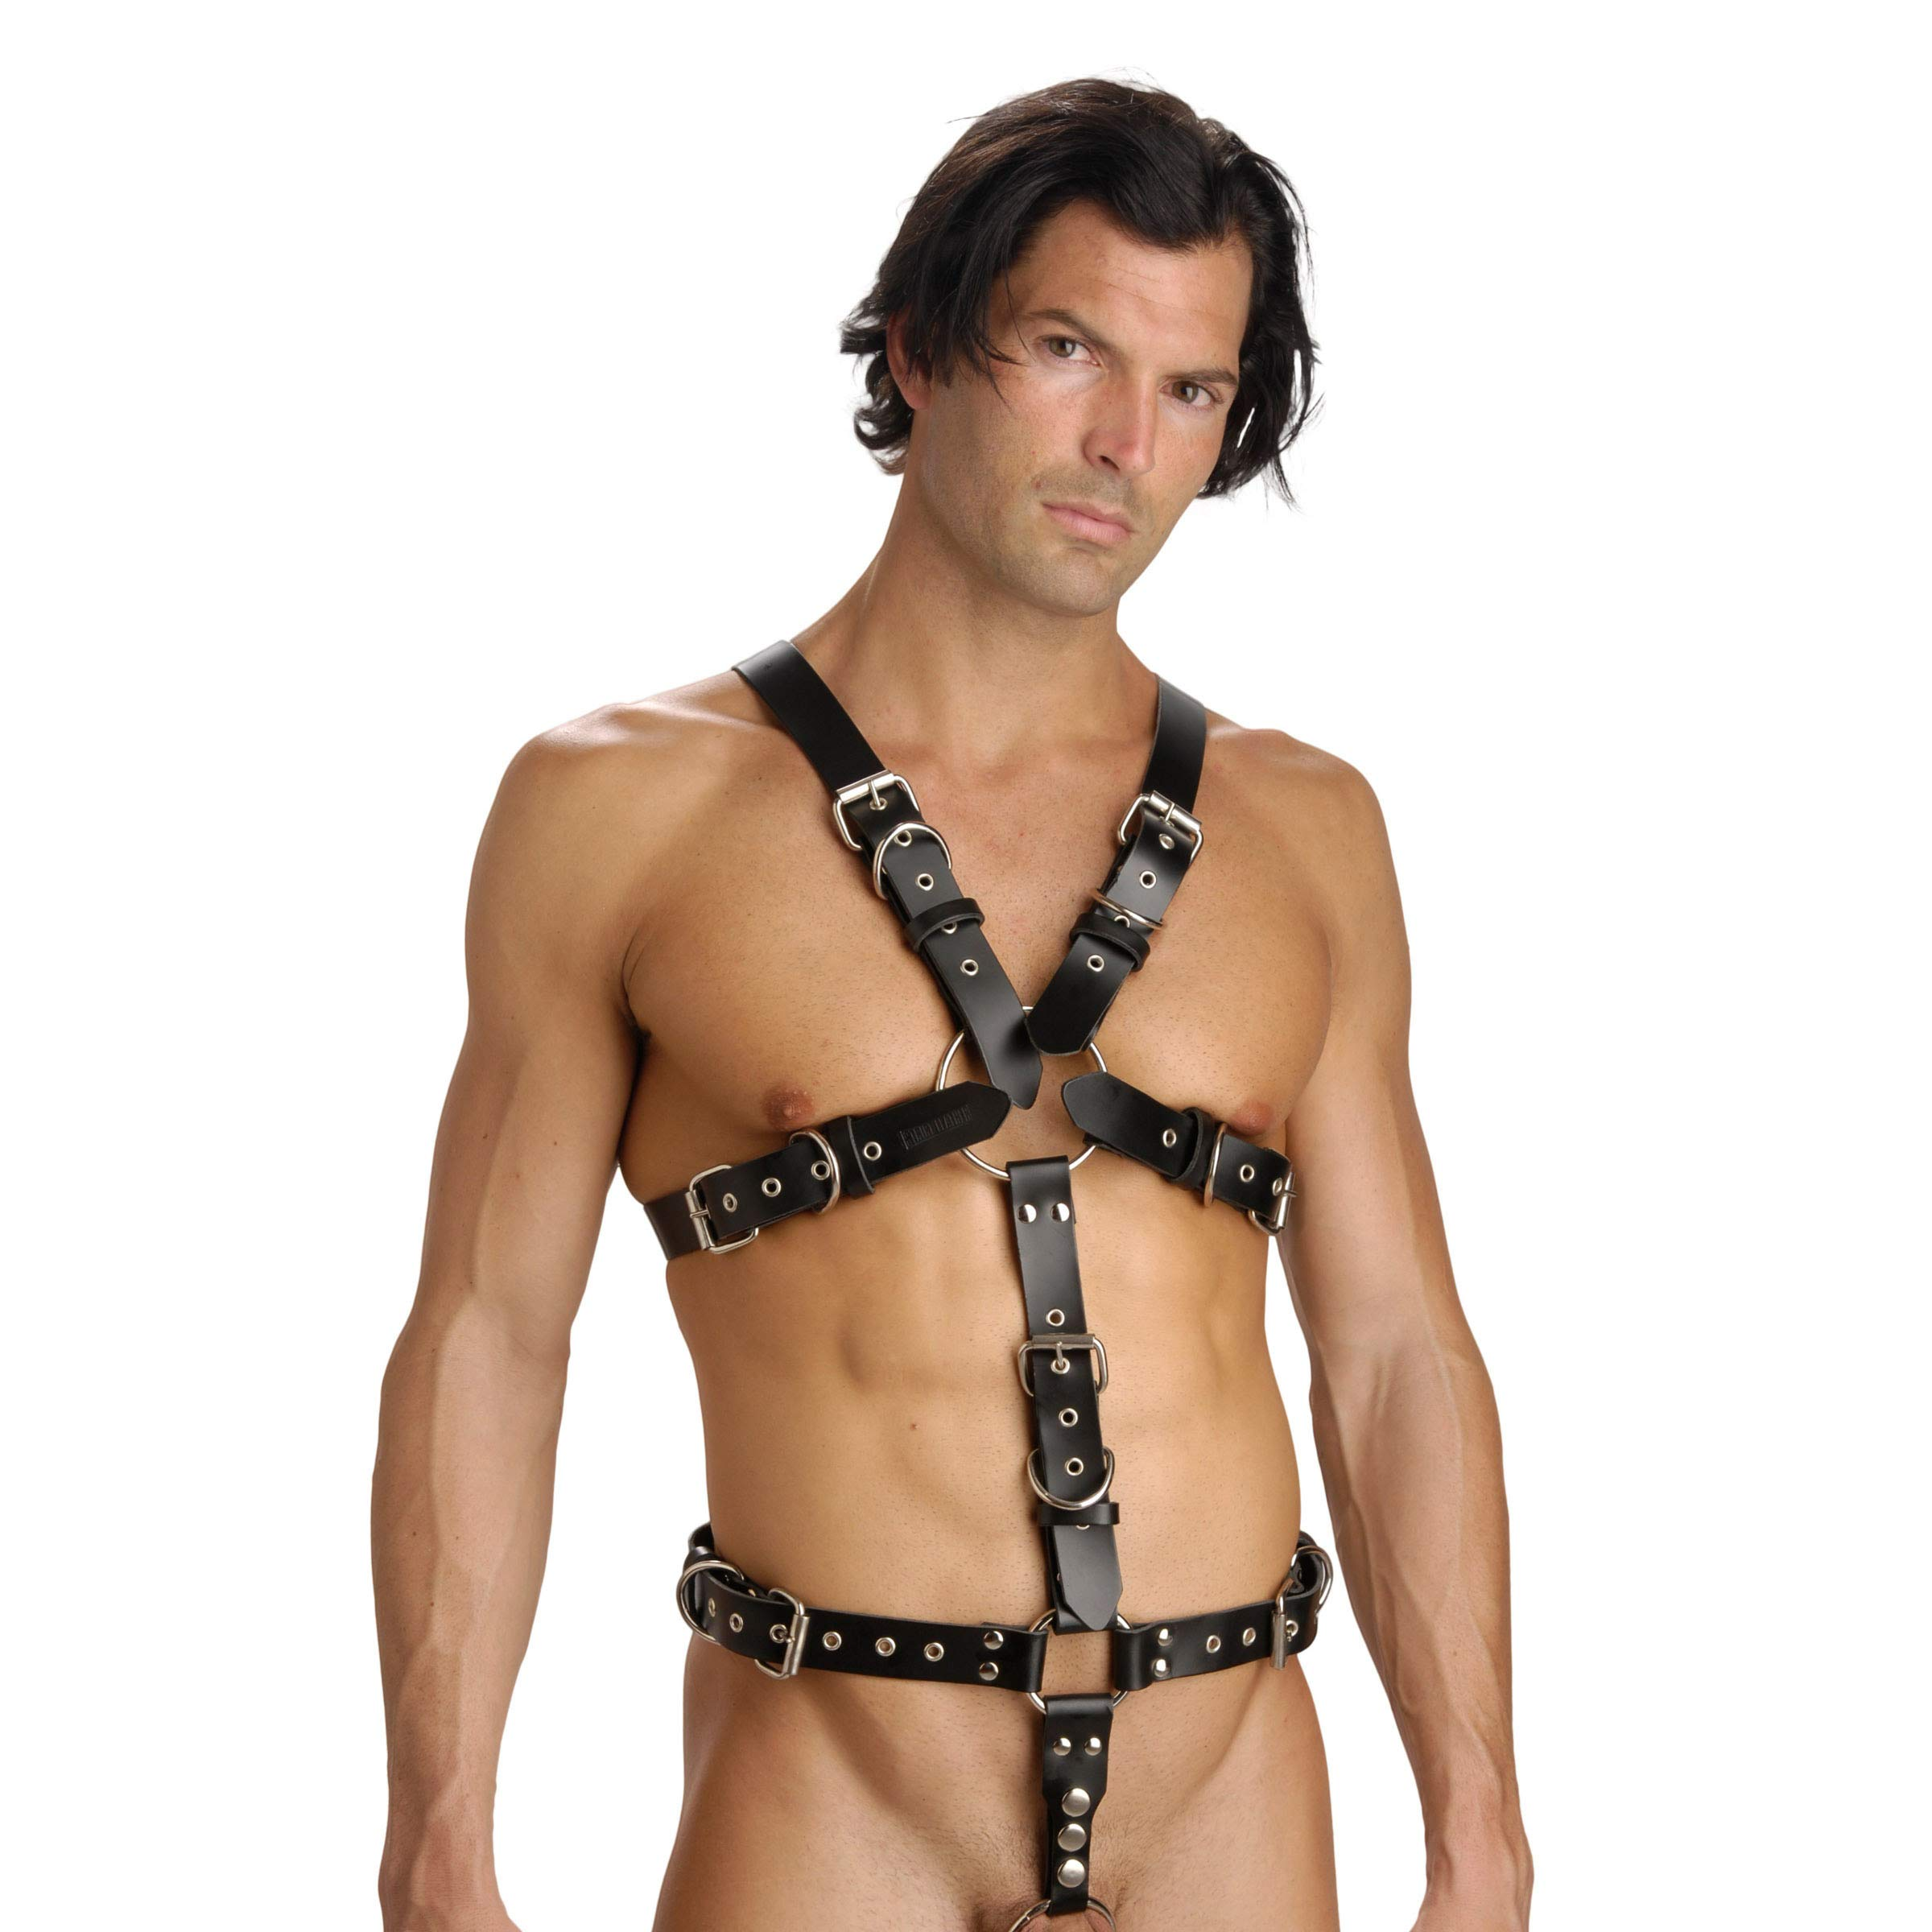 Strict Leather Body Harness with Cock Ring, Medium Large by Strict Leather